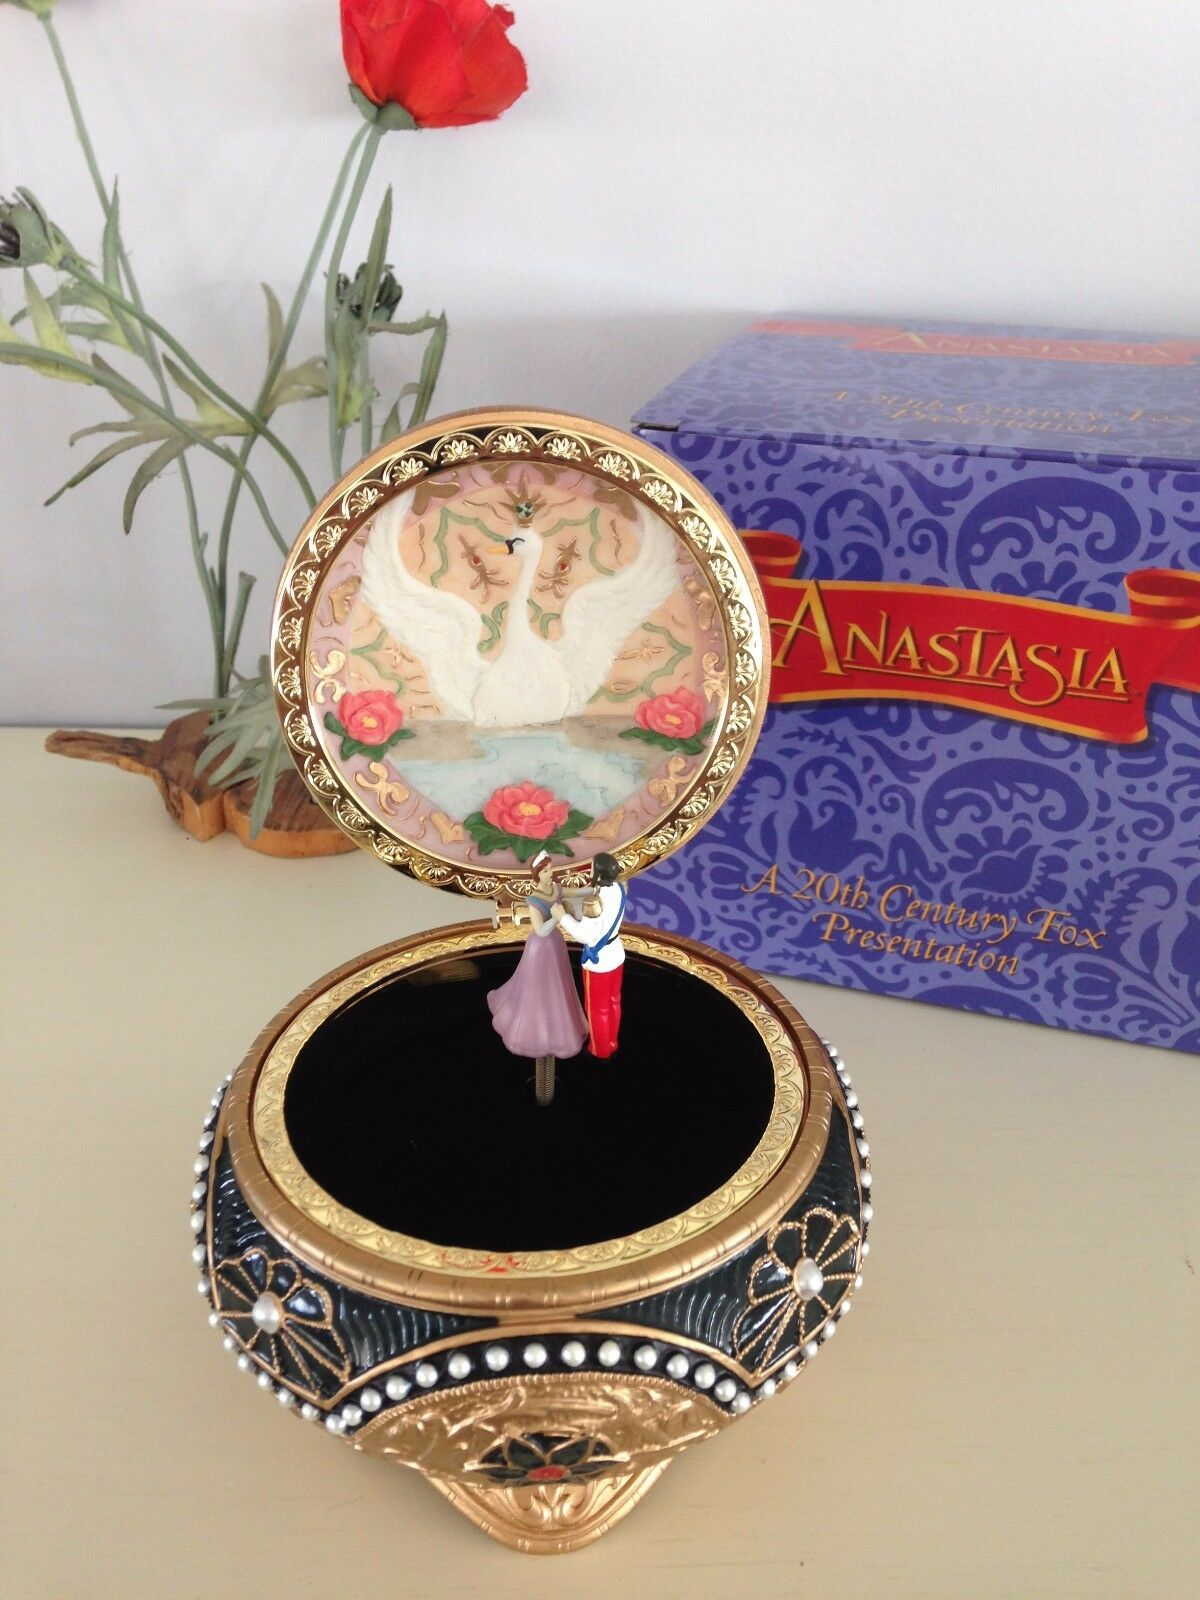 Anastasia Alexandra & Nicholas Hinged Music Box San Francisco Music Box Co. New